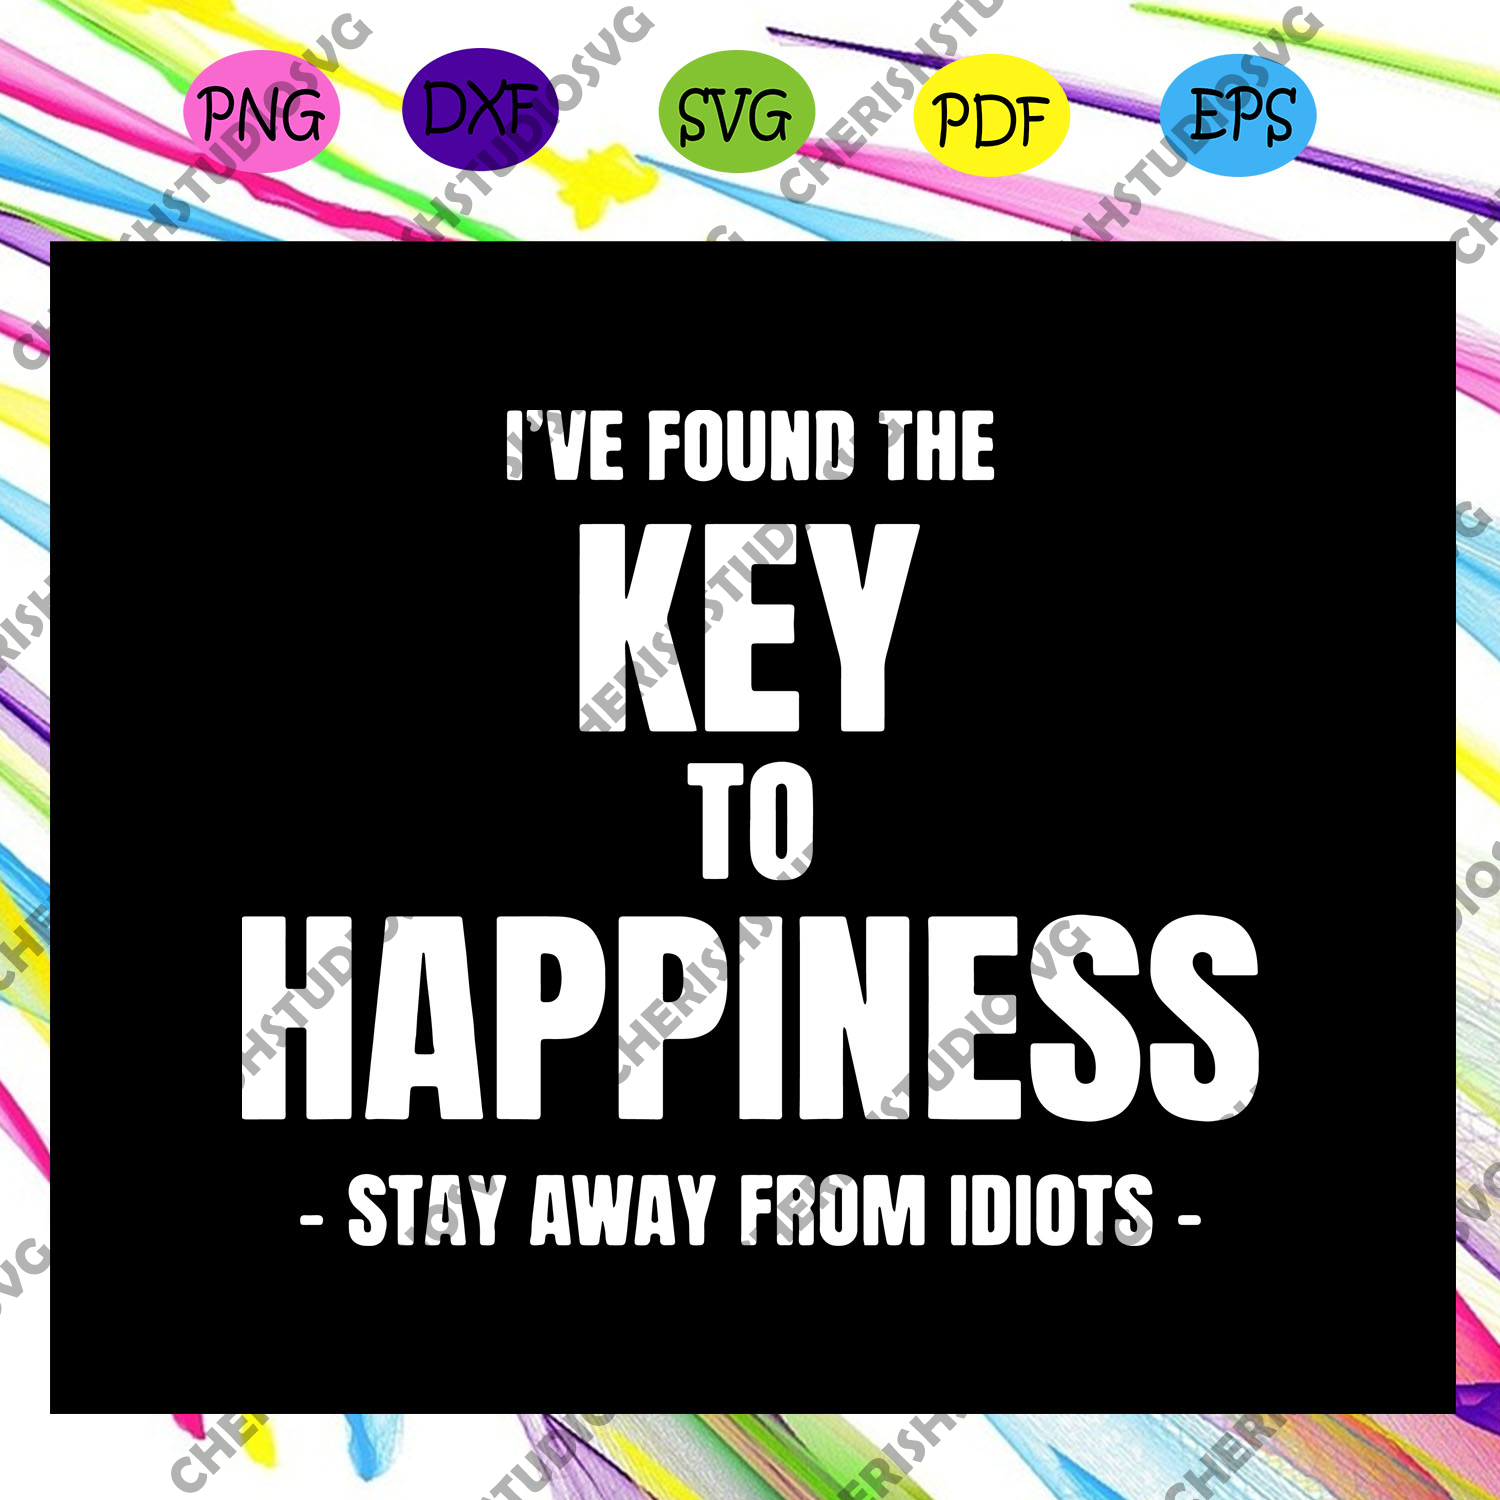 I've found the key to happiness svg, stay away from idiots svg, Inspirational happiness svg, gift for men, inspirational gift, happiness gift, key to happiness svg, Files For Silhouette, Files For Cricut, SVG, DXF, EPS, PNG, Instant Download